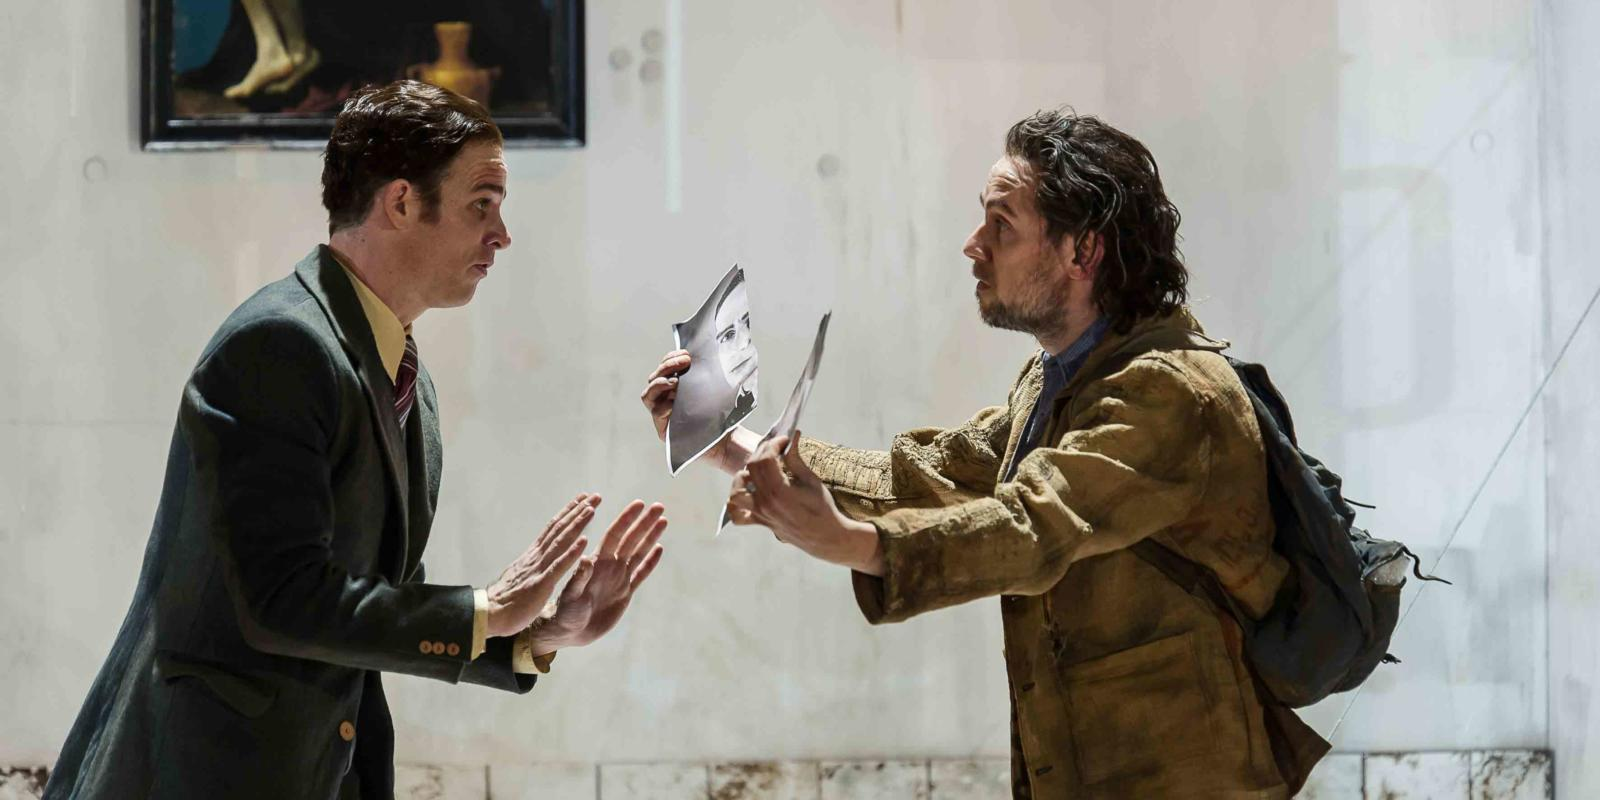 An image of Christopher Ainslie and Iestyn Davies in Richard Jones's 2014 production of Rodelinda